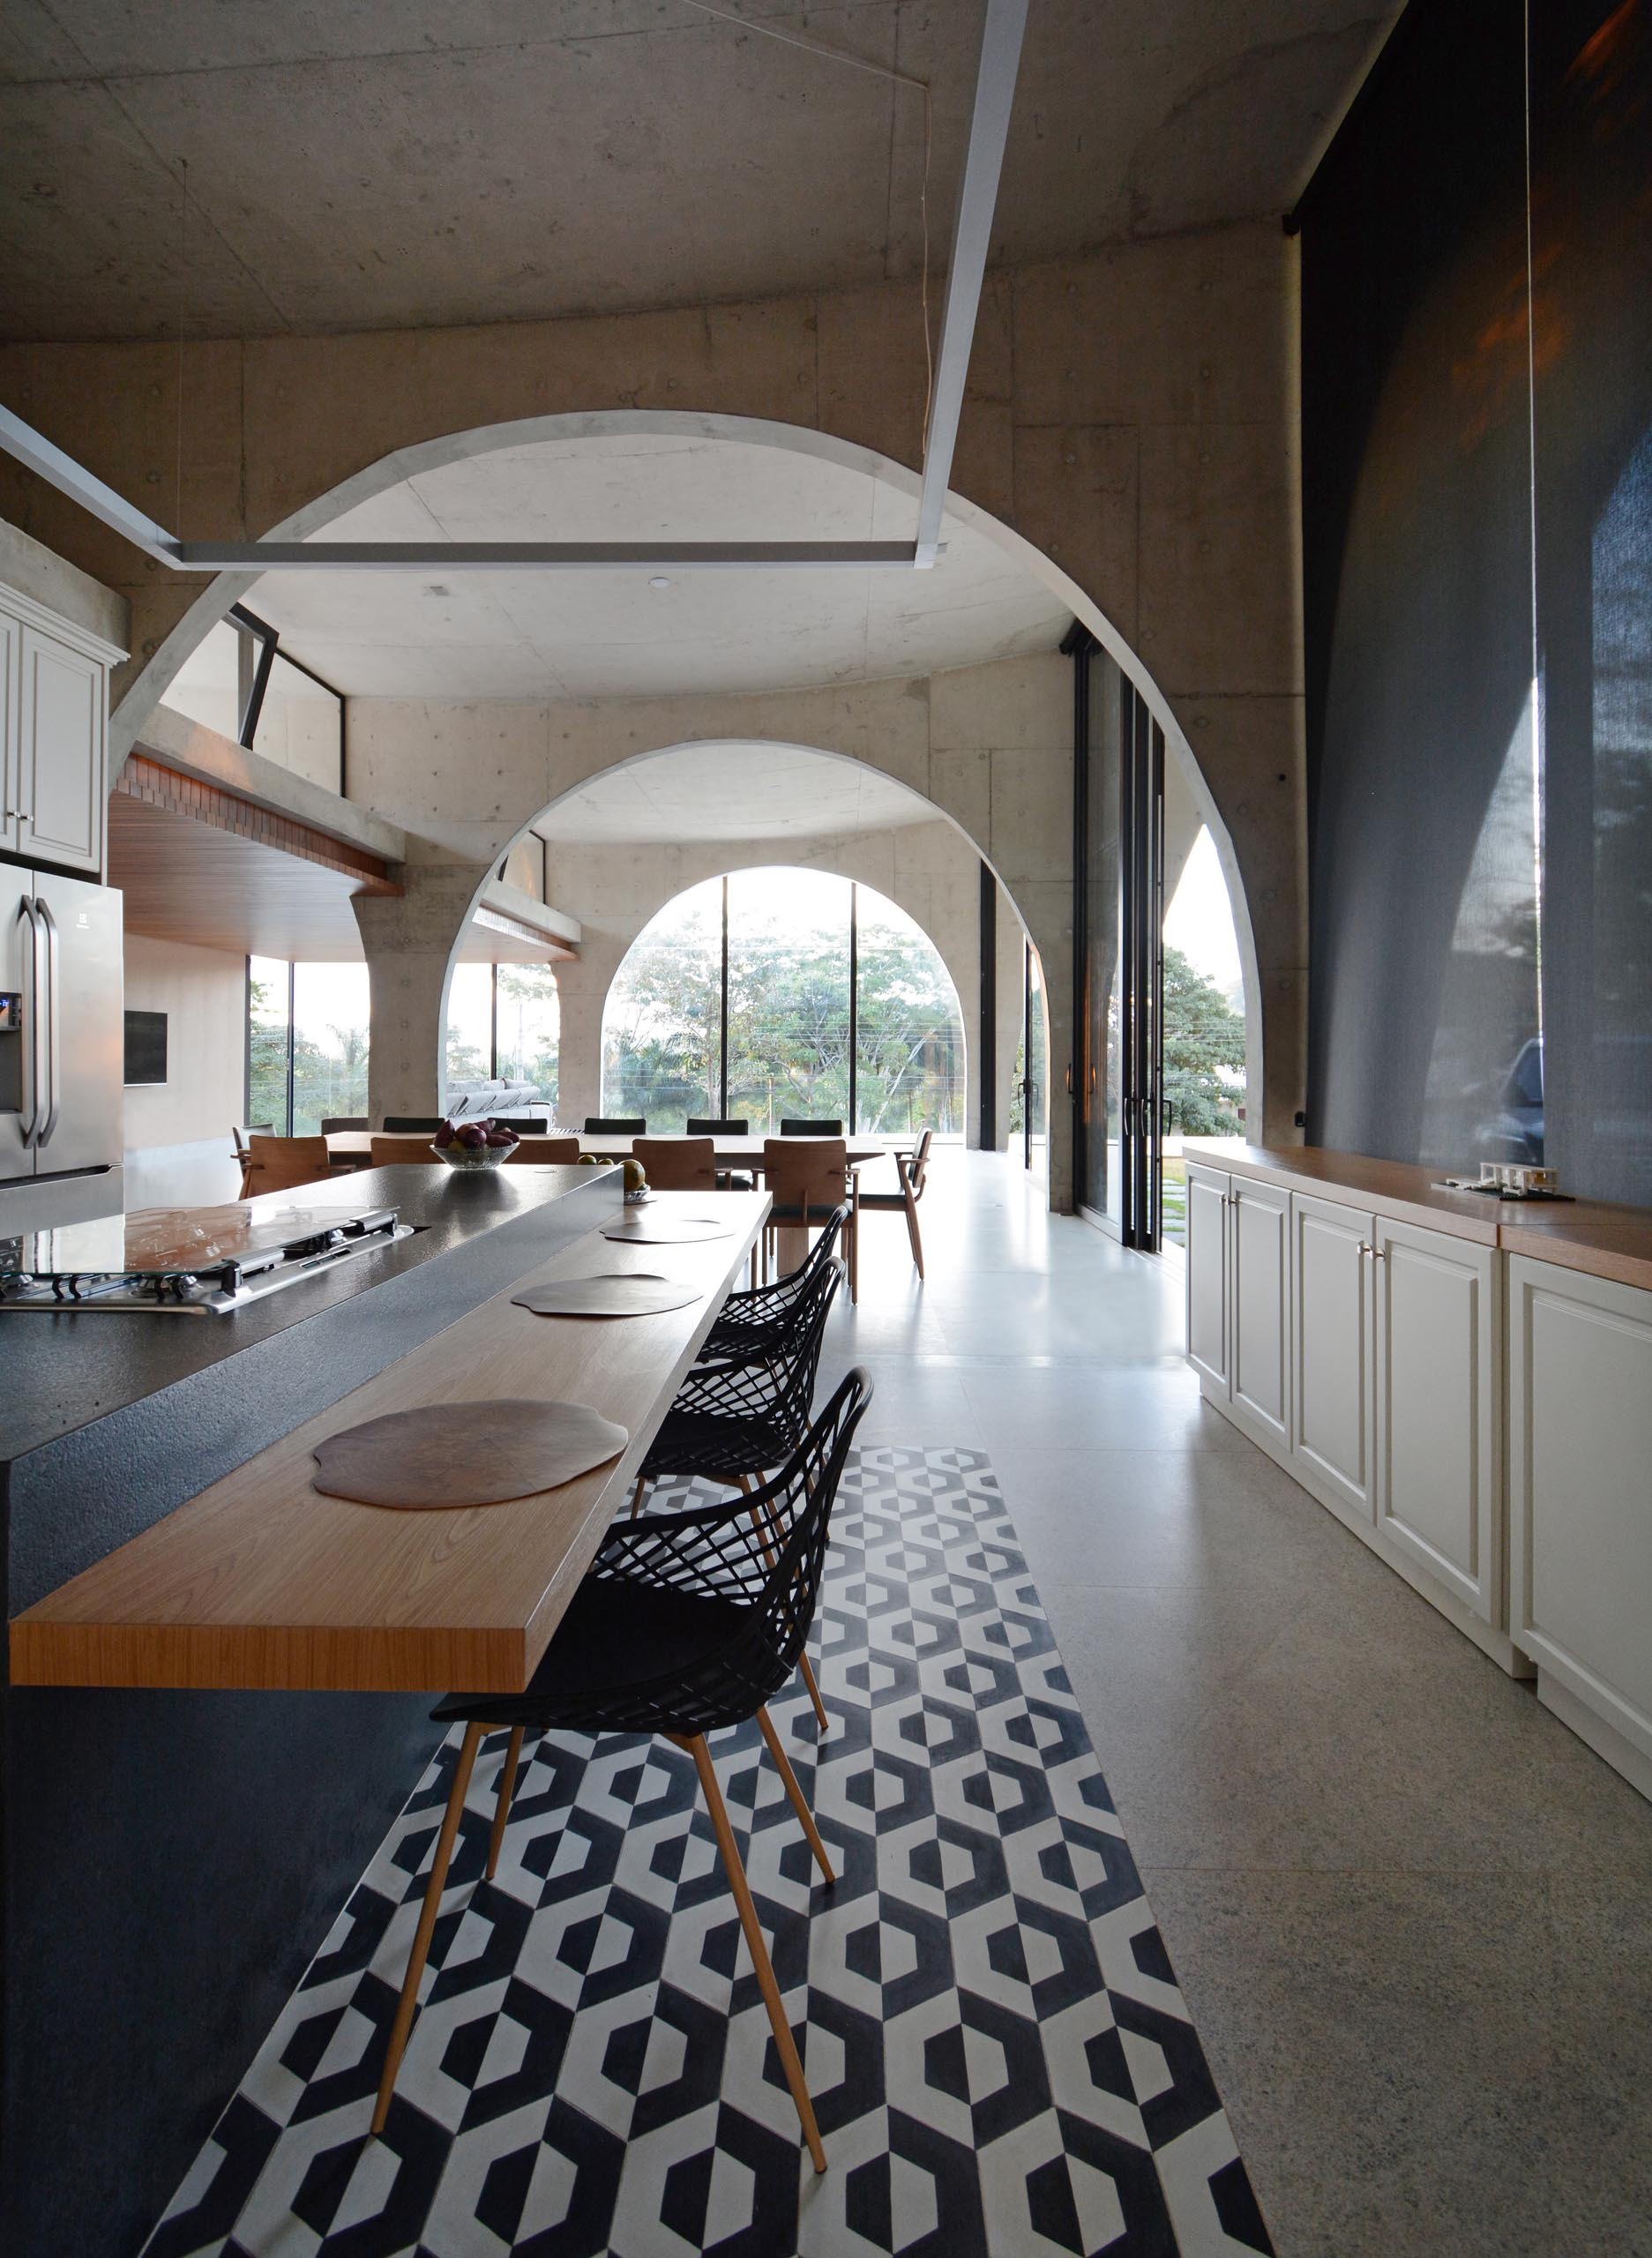 A modern home with large concrete arches that allow for an open floor plan.